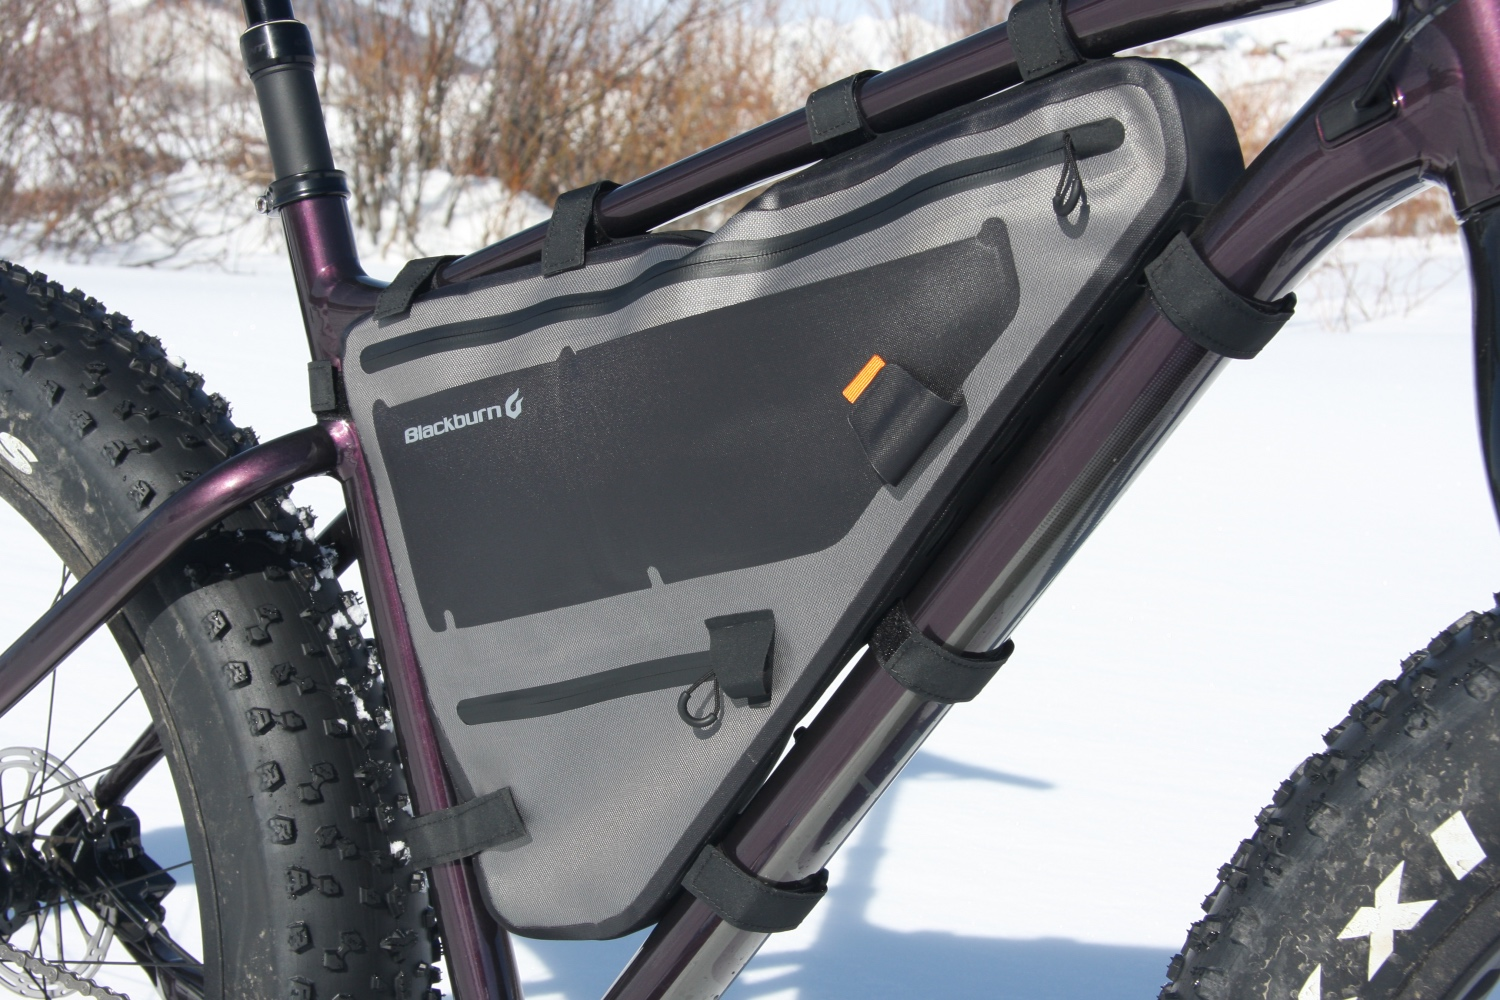 During training/fun rides we jammed the Blackburn Outpost Elite Frame Bag with all manner of just-in-case clothing. Photo by Jason Sumner